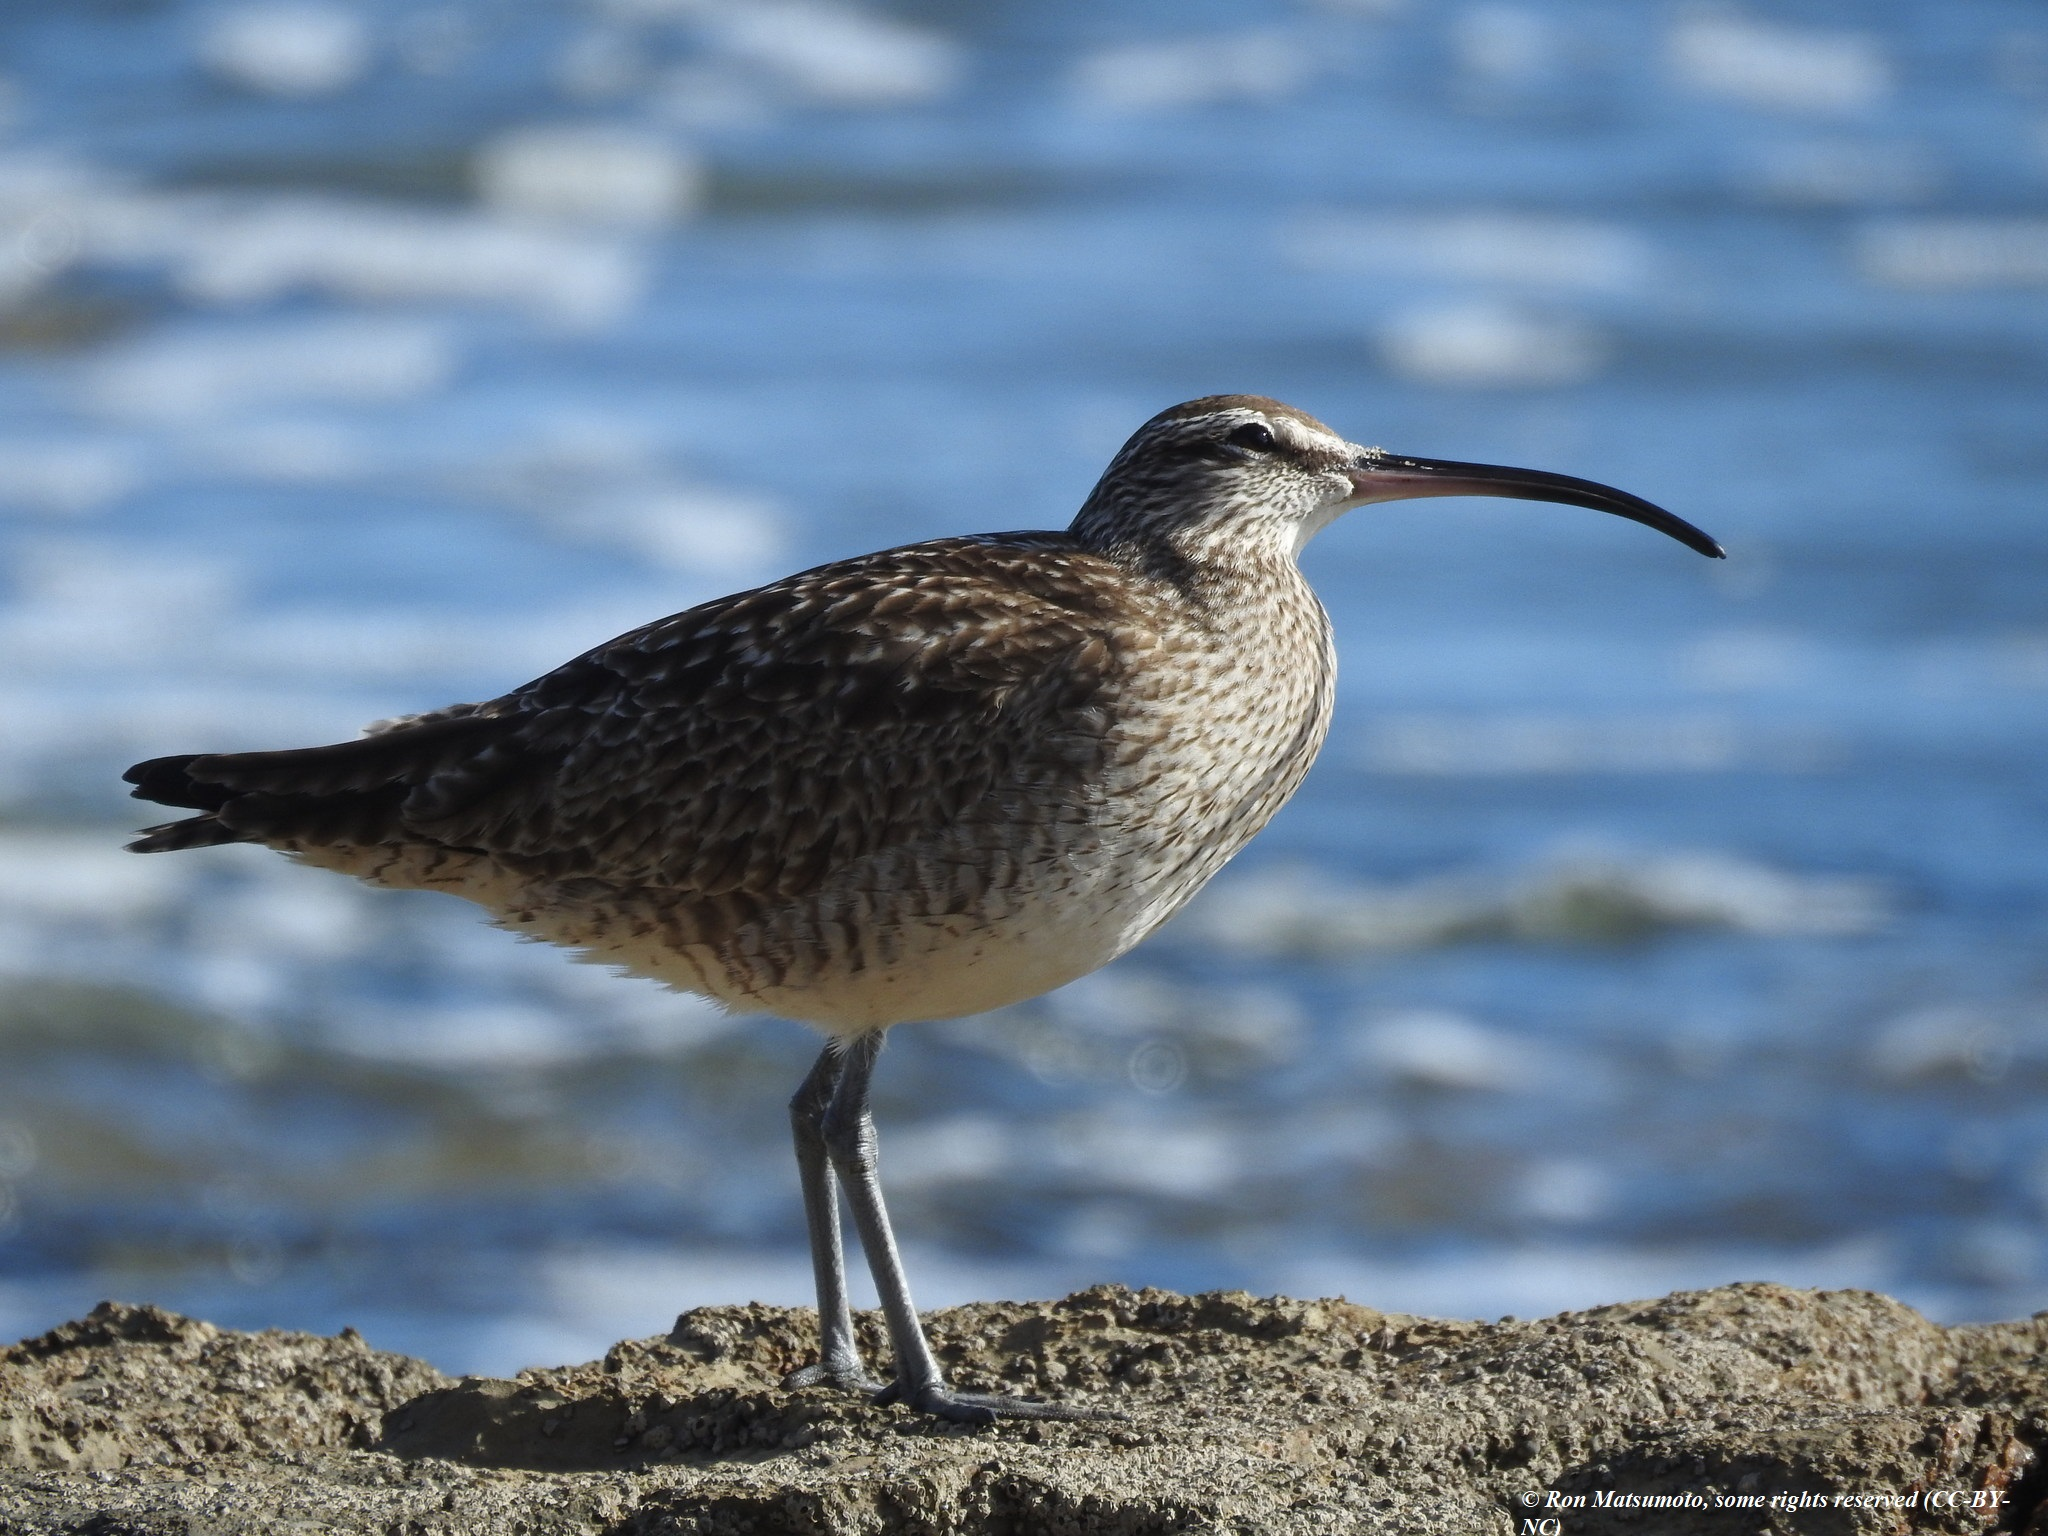 curlew_whimbrel_Ron_Matsumoto_CC-BY-NC_credit